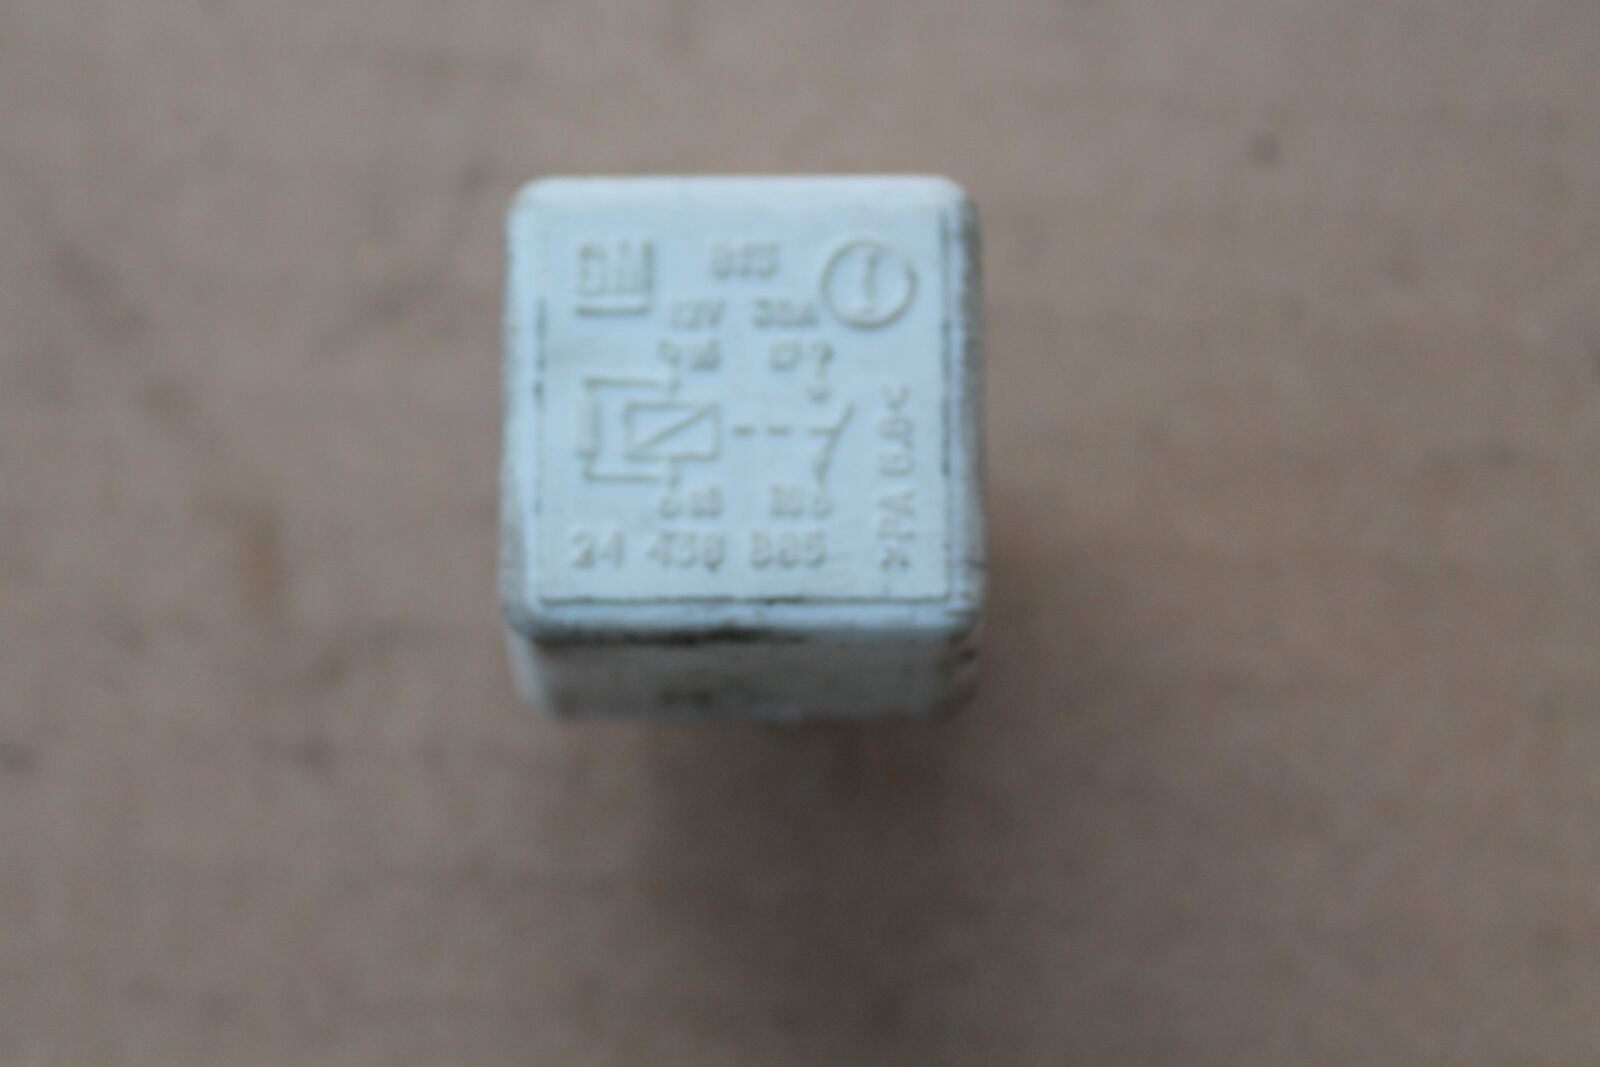 Relay 24438885 Opel Astra G 1530 Picclick Uk Mk4 Fuse Box 1 Of 1only 2 Available